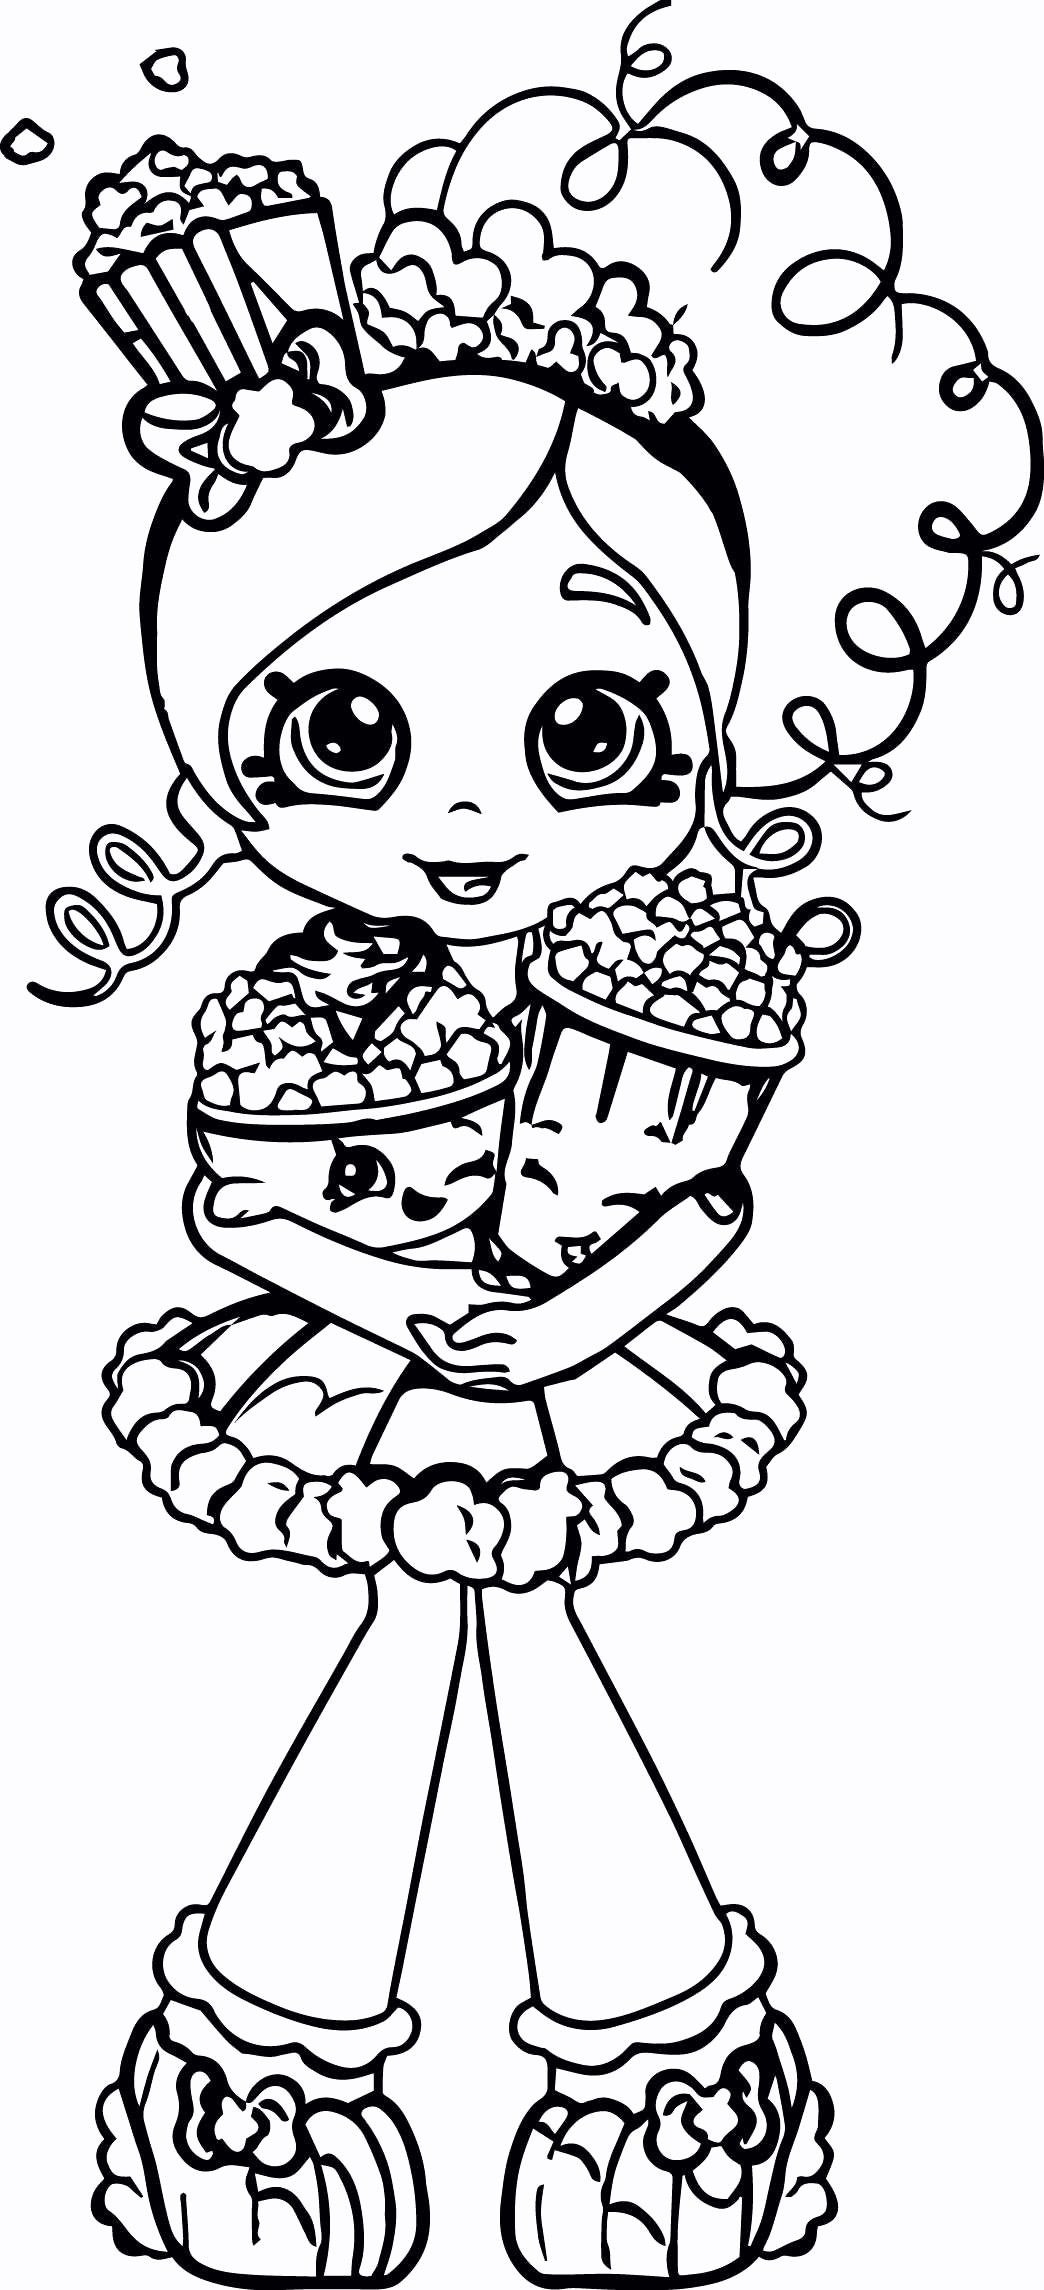 Free Shopkins Coloring Pages Printable Shopkin Coloring Pages Coloring Pages For Girls Cartoon Coloring Pages